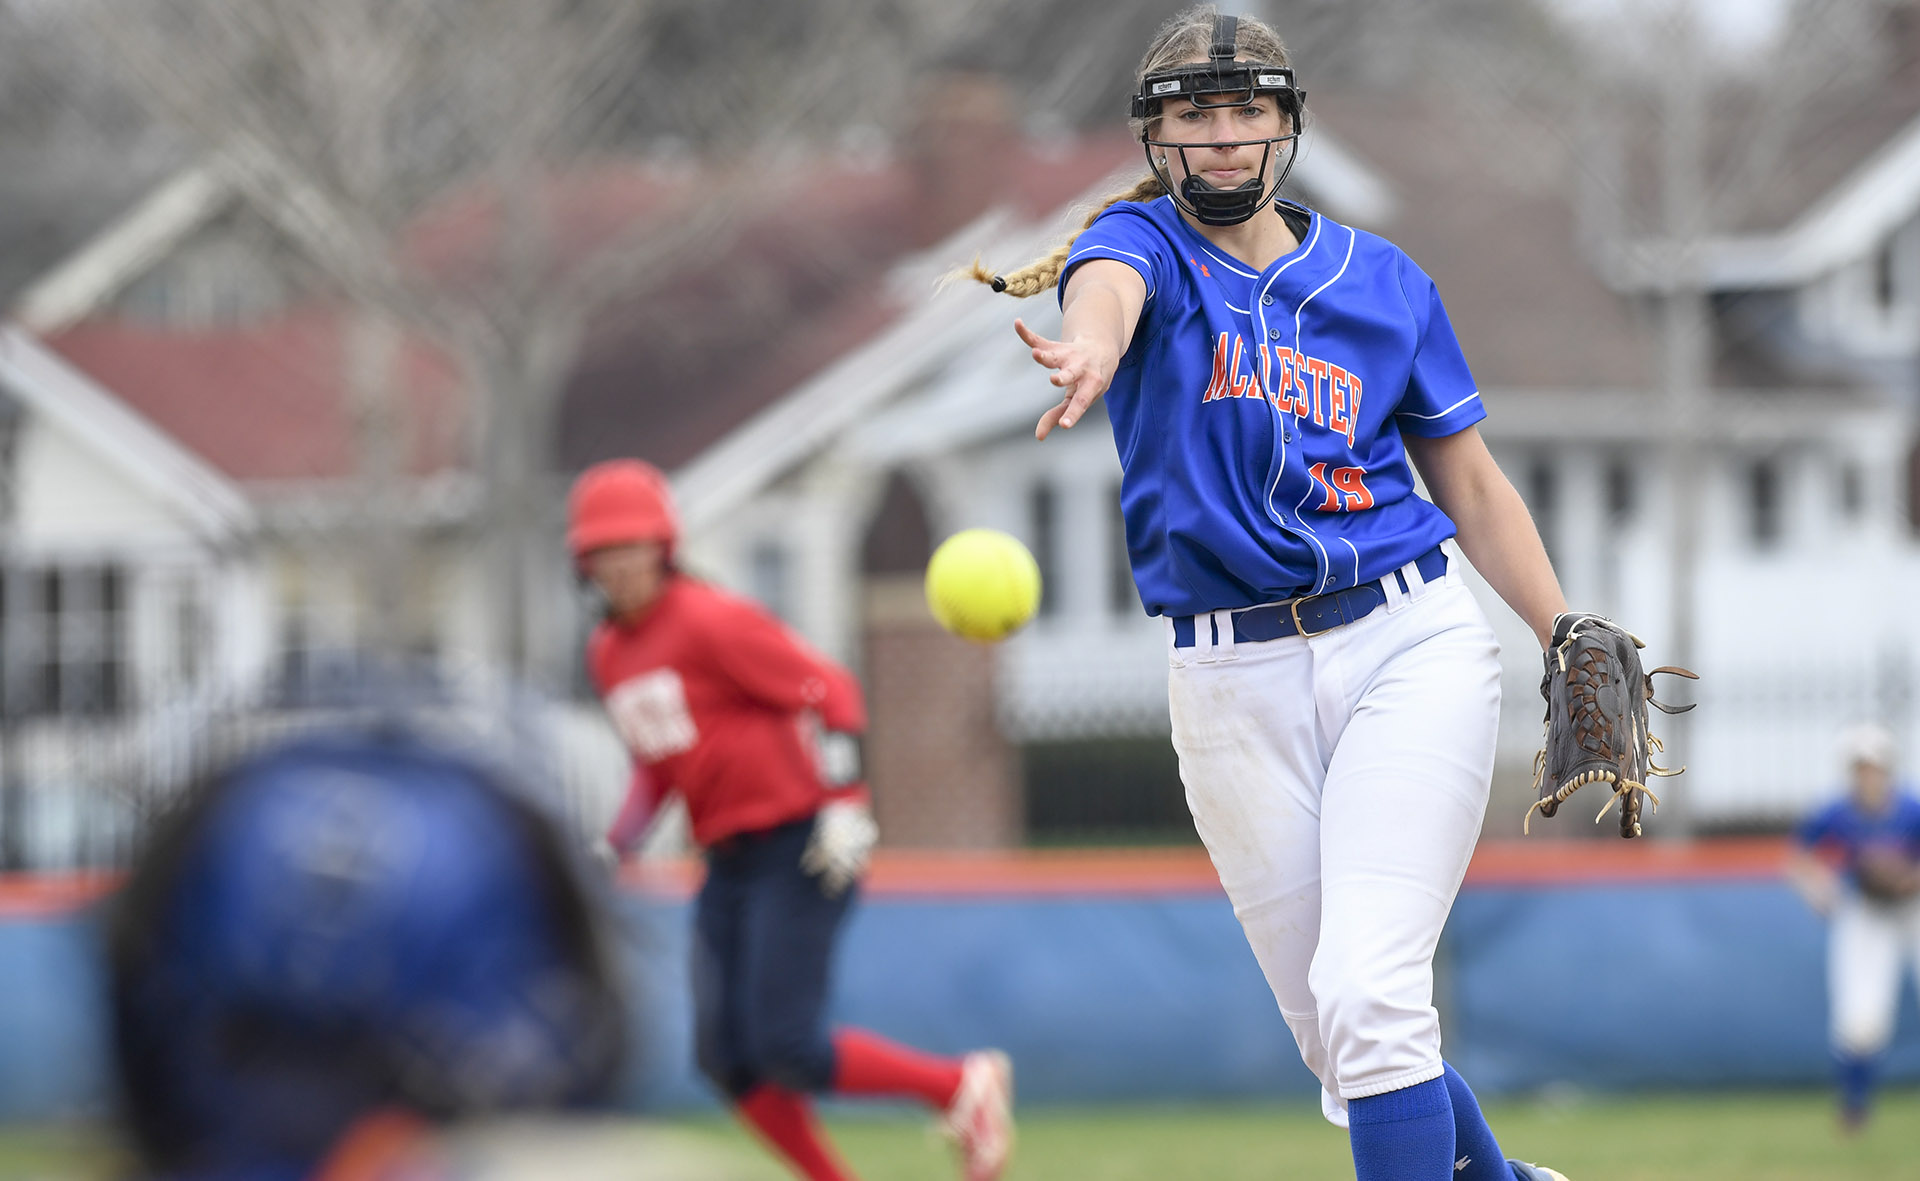 Softball: Macalester Finishes ACM Tournament with Win Over